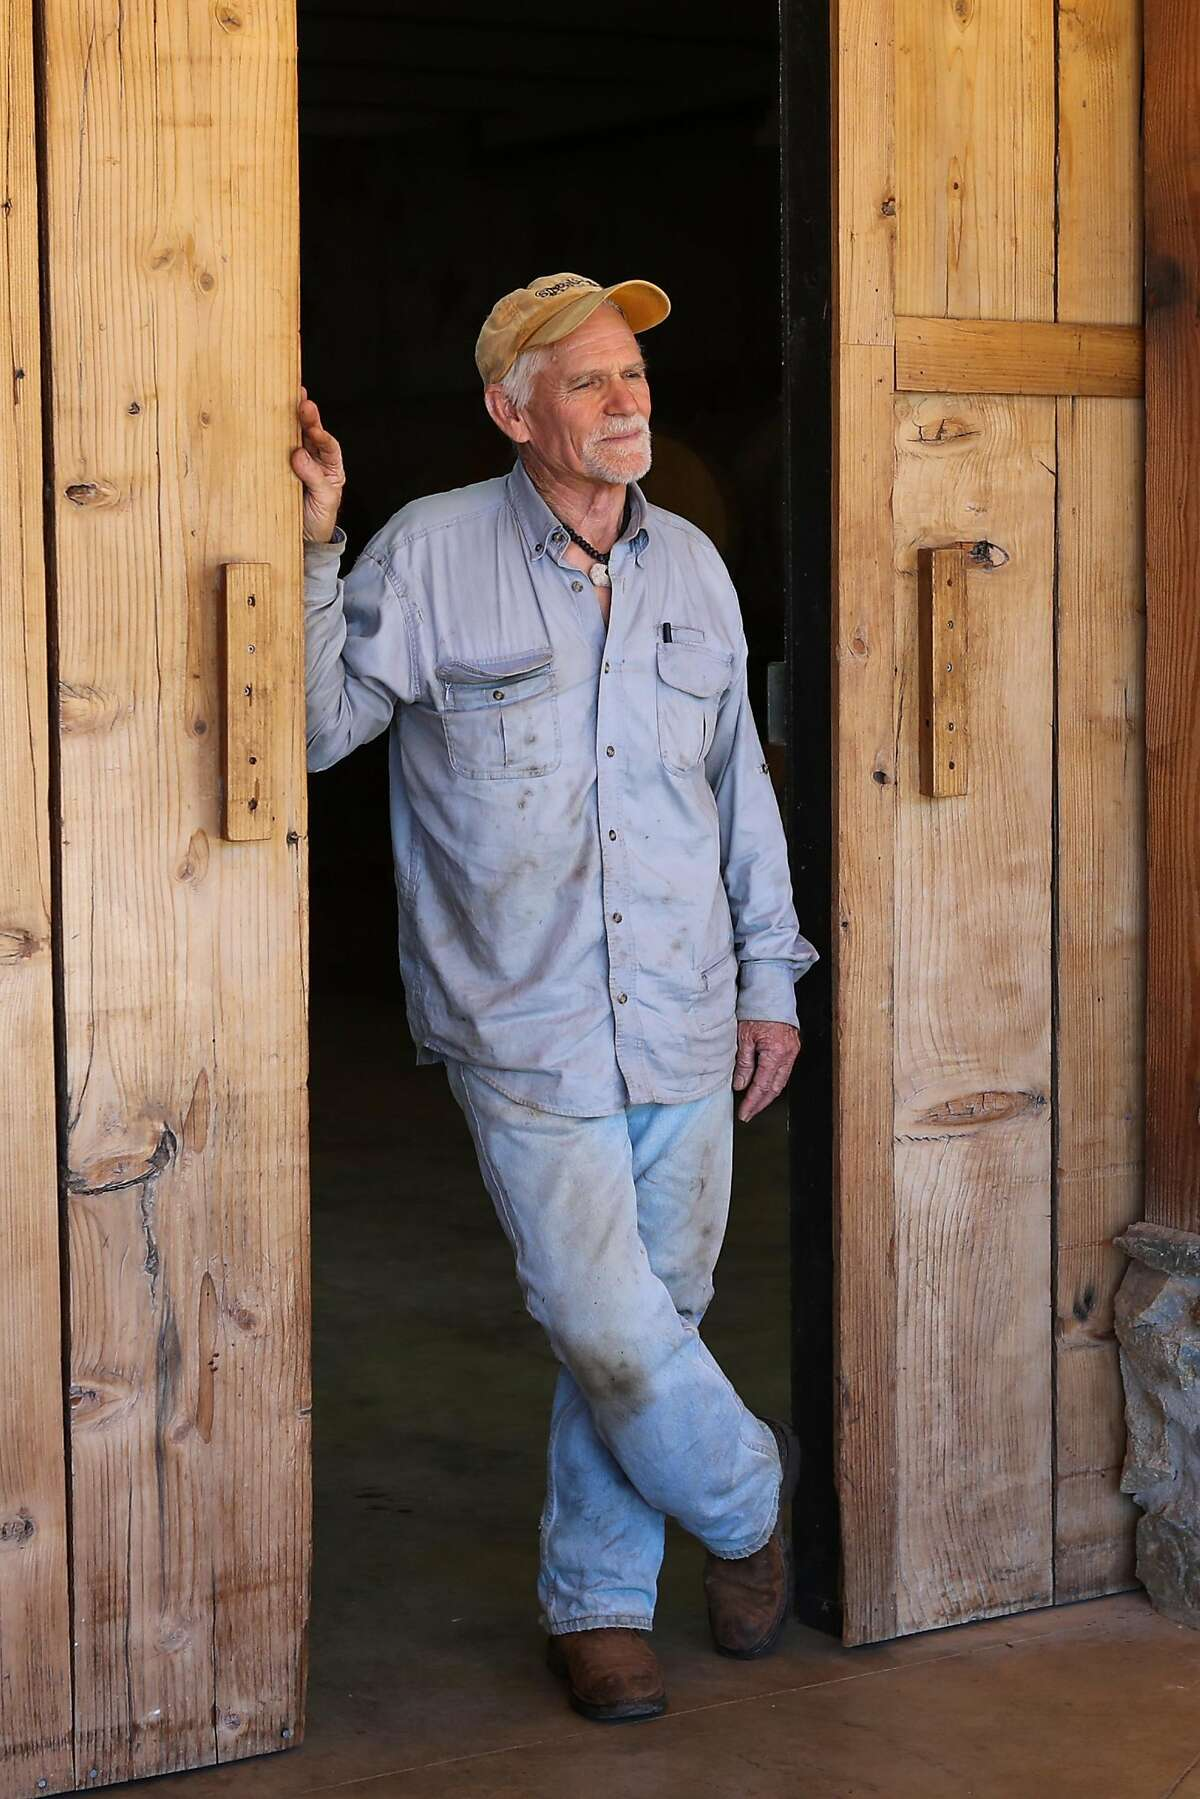 Owners Phil Starr stand for a portrait at Sierra Starr winery in Grass Valley, California, on Thursday, Sept. 1, 2016.